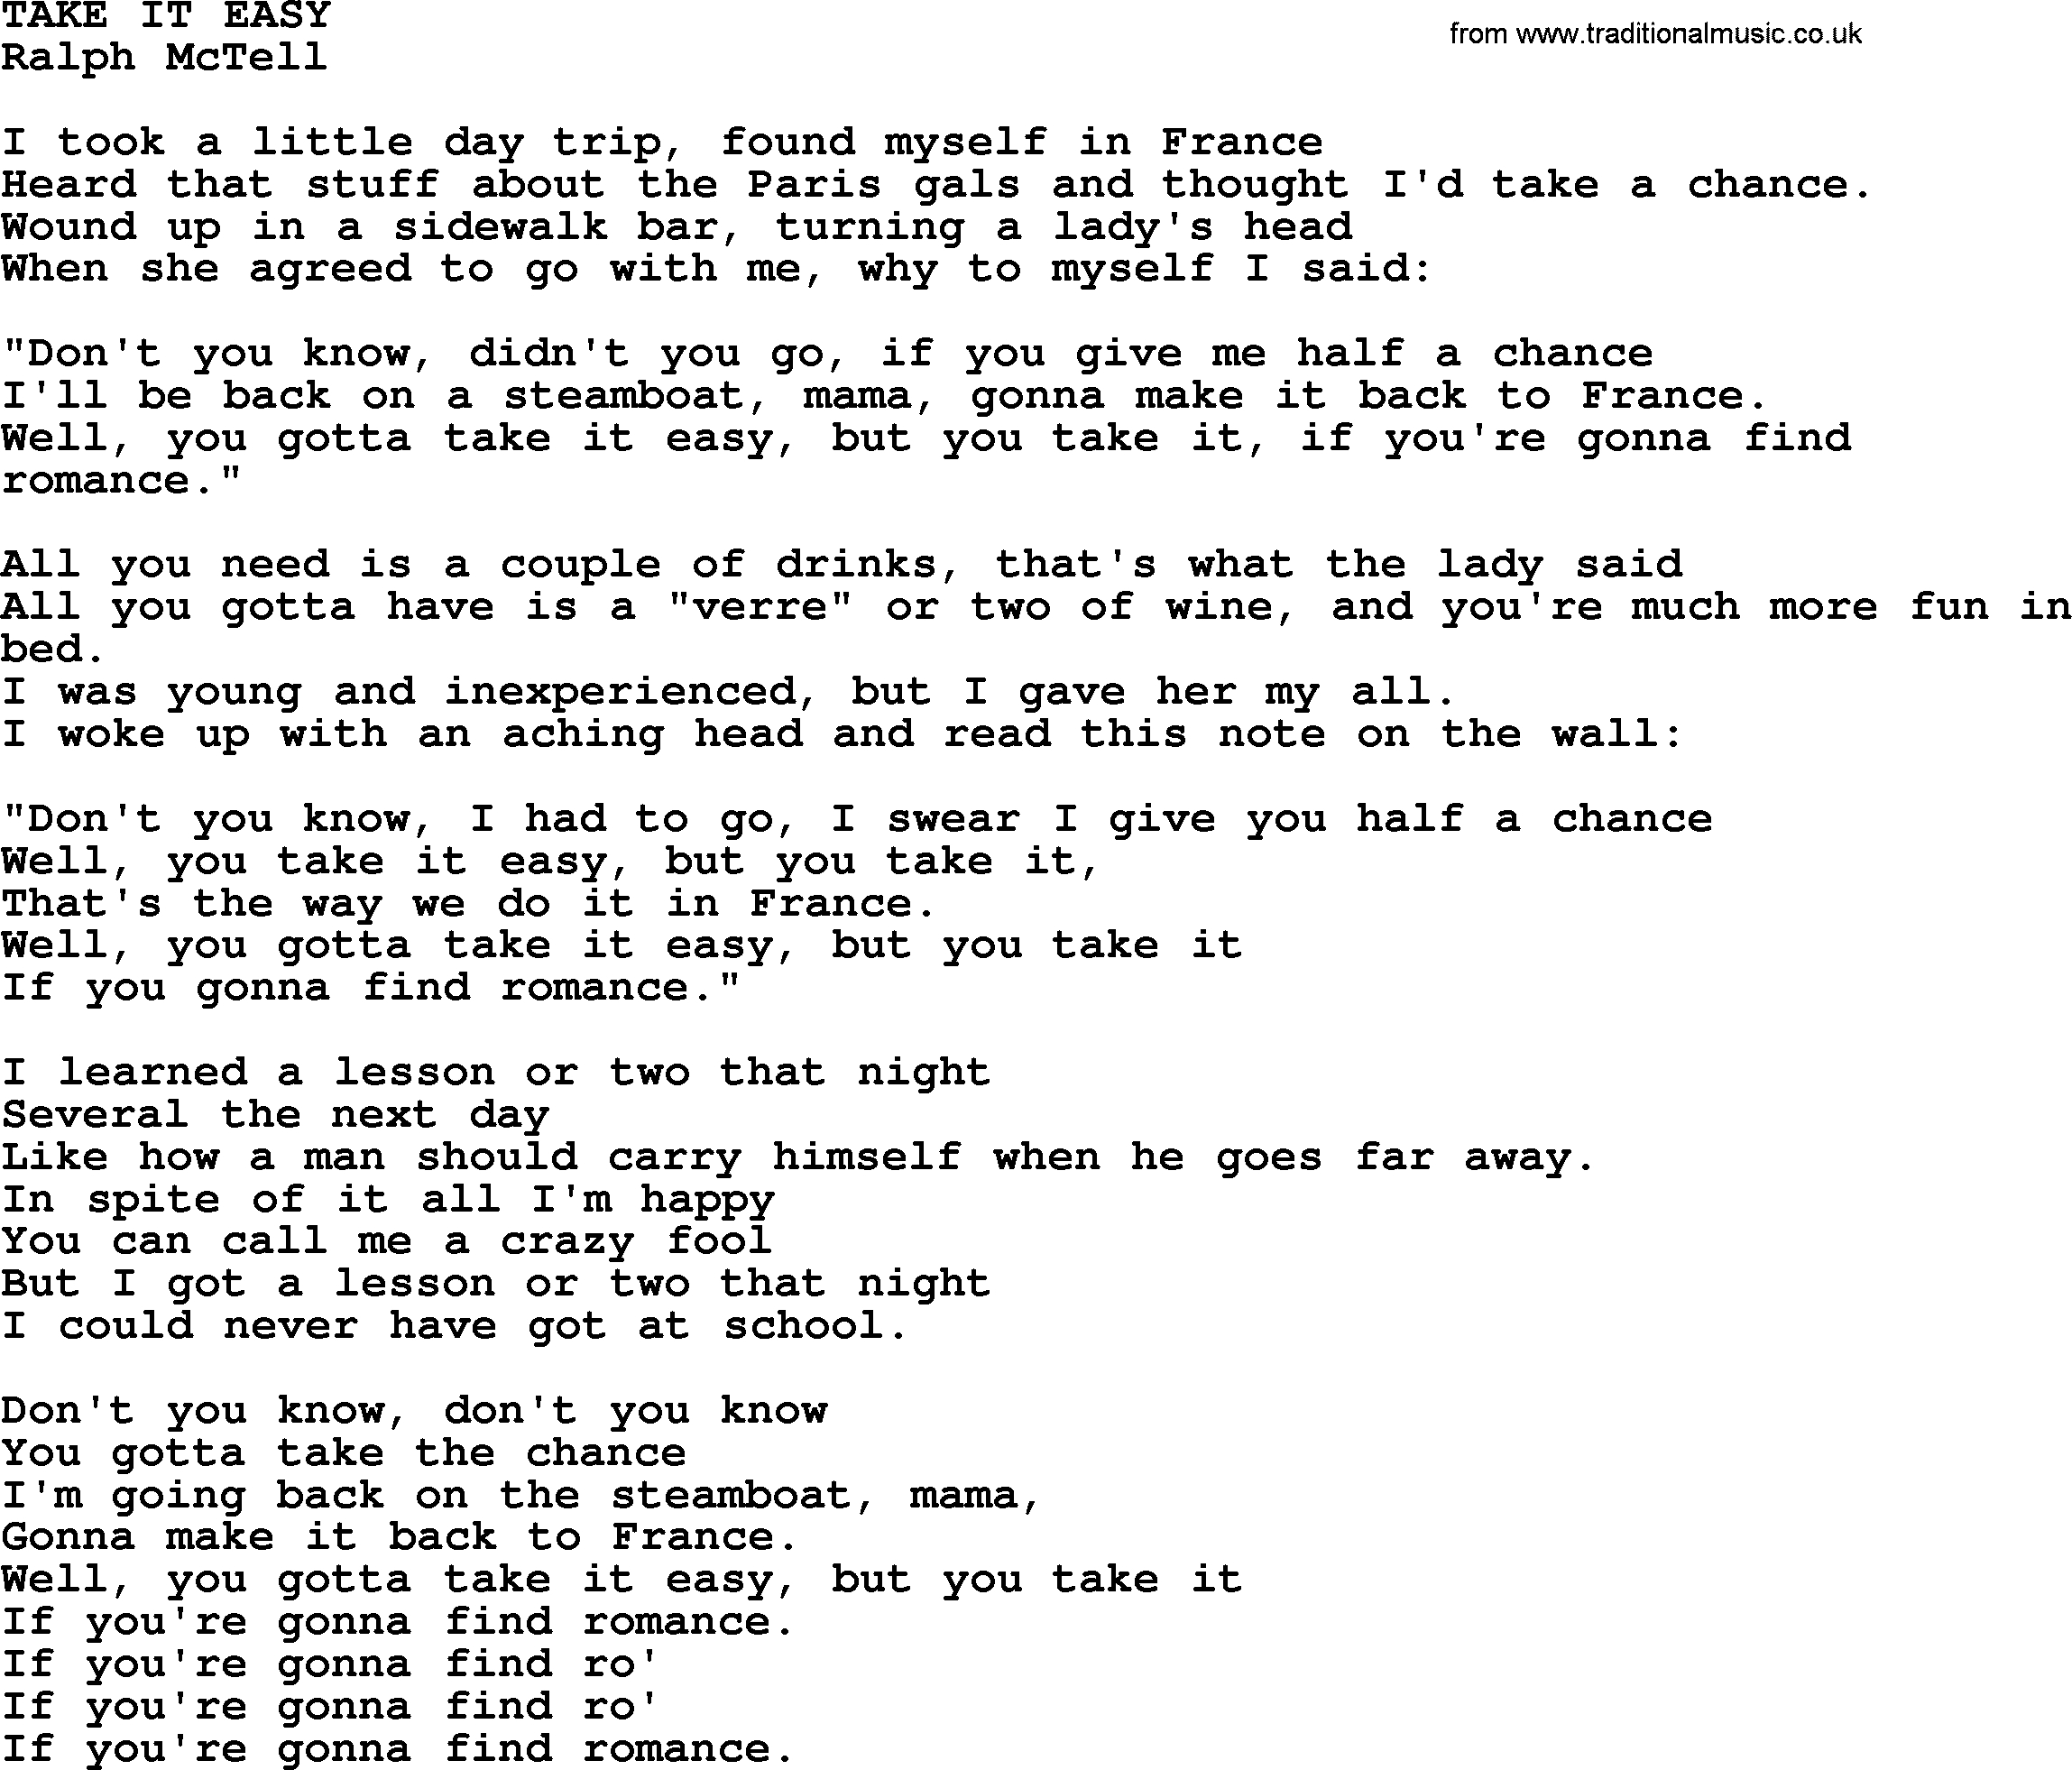 Take It Easy Chords Take It Easytxt Ralph Mctell Lyrics And Chords